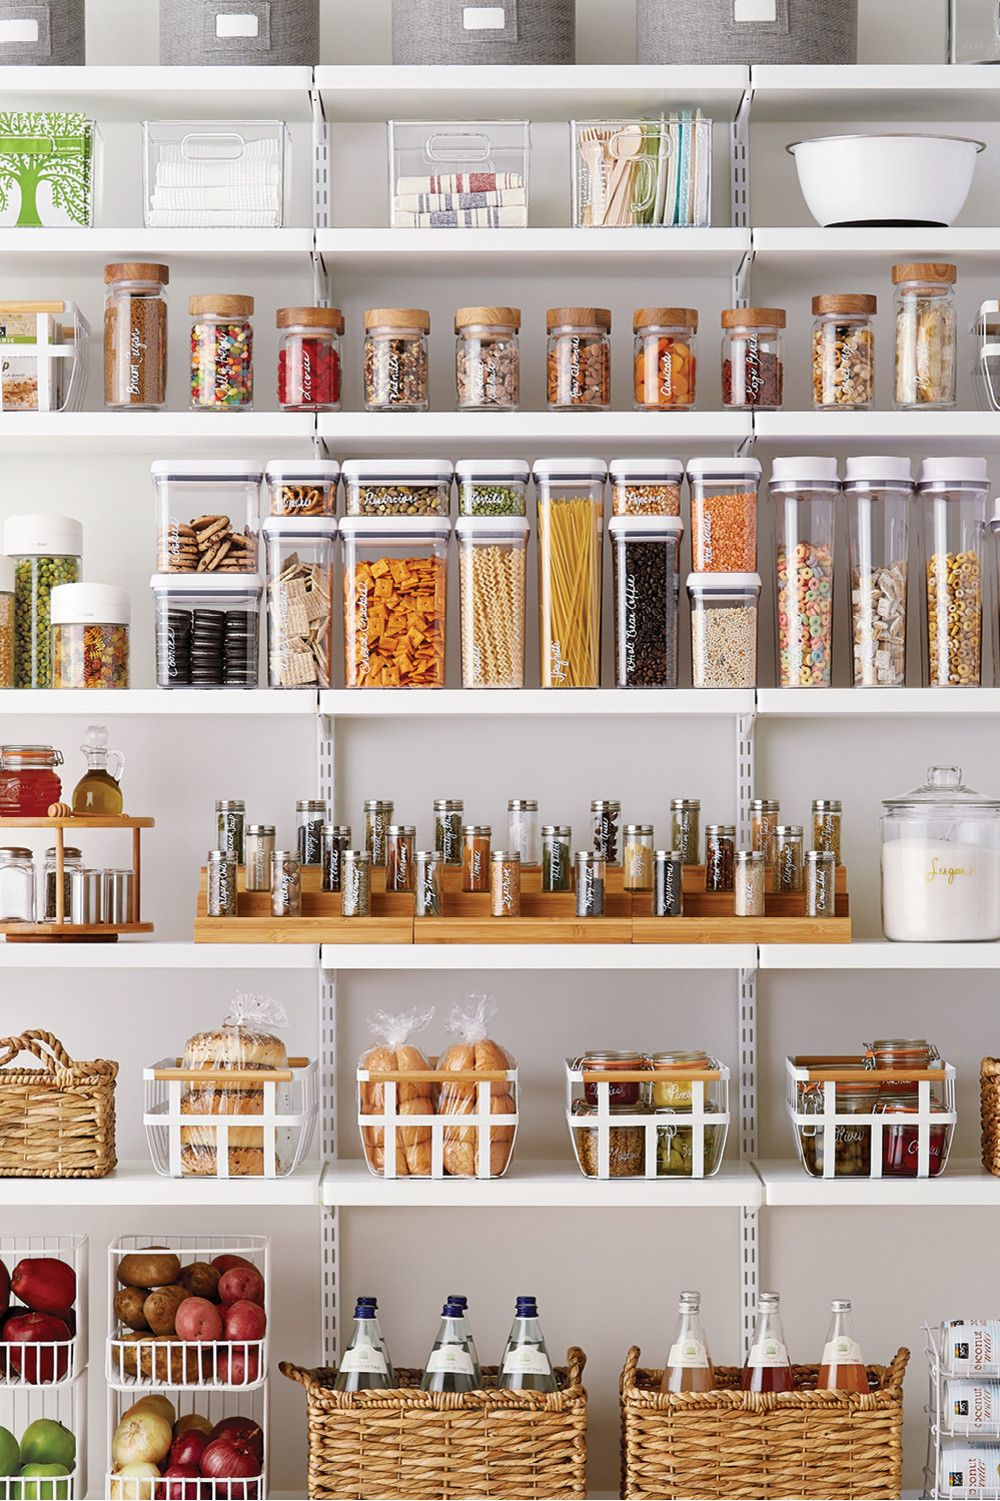 Delicieux Kitchen Refresh: Pantry | The Container Store Butler Pantry, Pantry Storage  Containers, Pantry